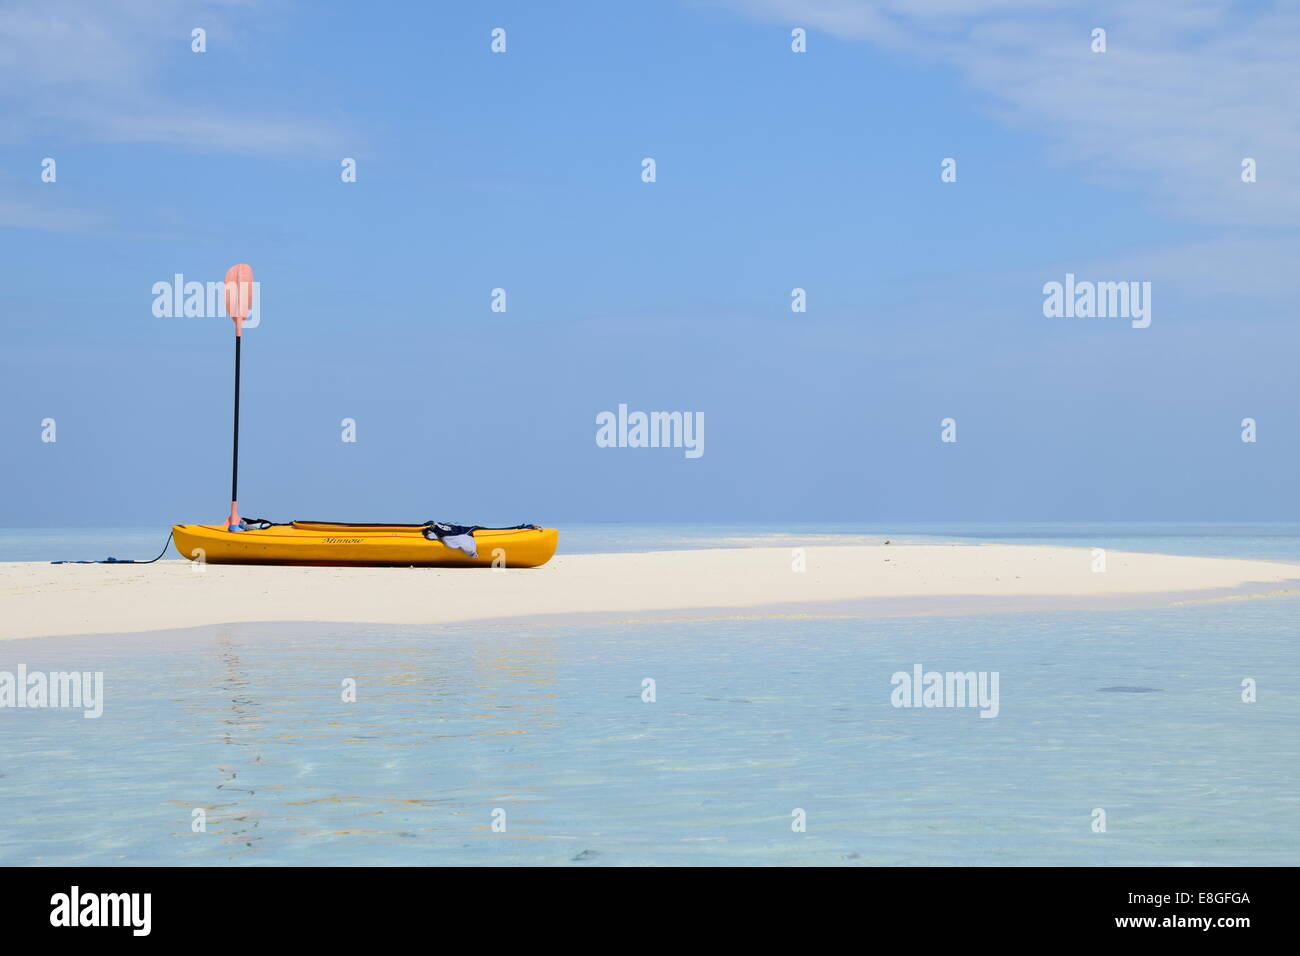 Canoe at rest on a beautiful sandbar surrounded by pristine waters - Stock Image